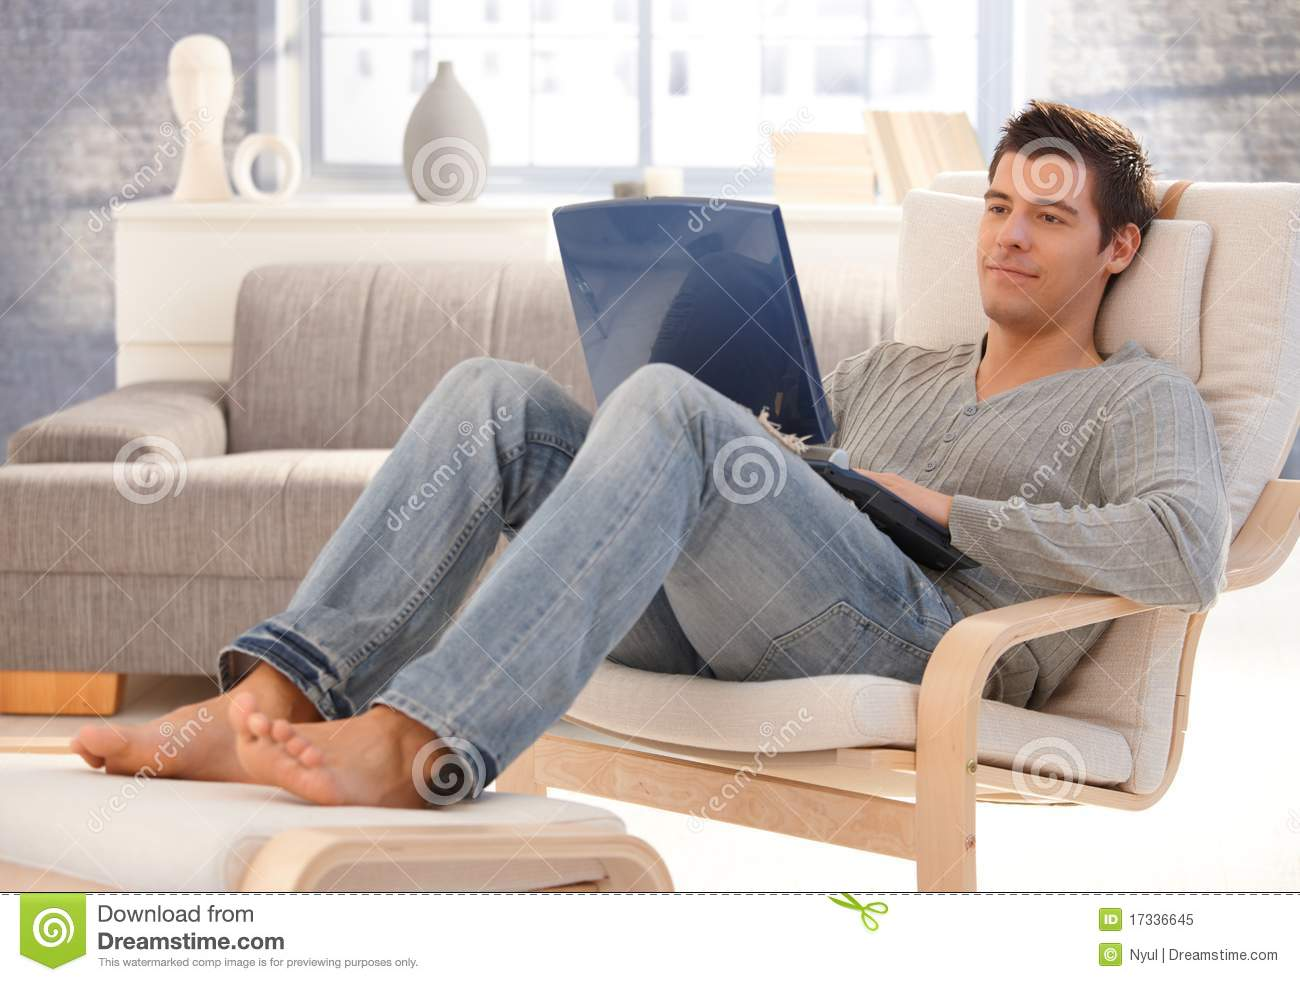 Goodlooking Young Man Relaxing At Home With Laptop Royalty Free Stock Photo Image 17336645